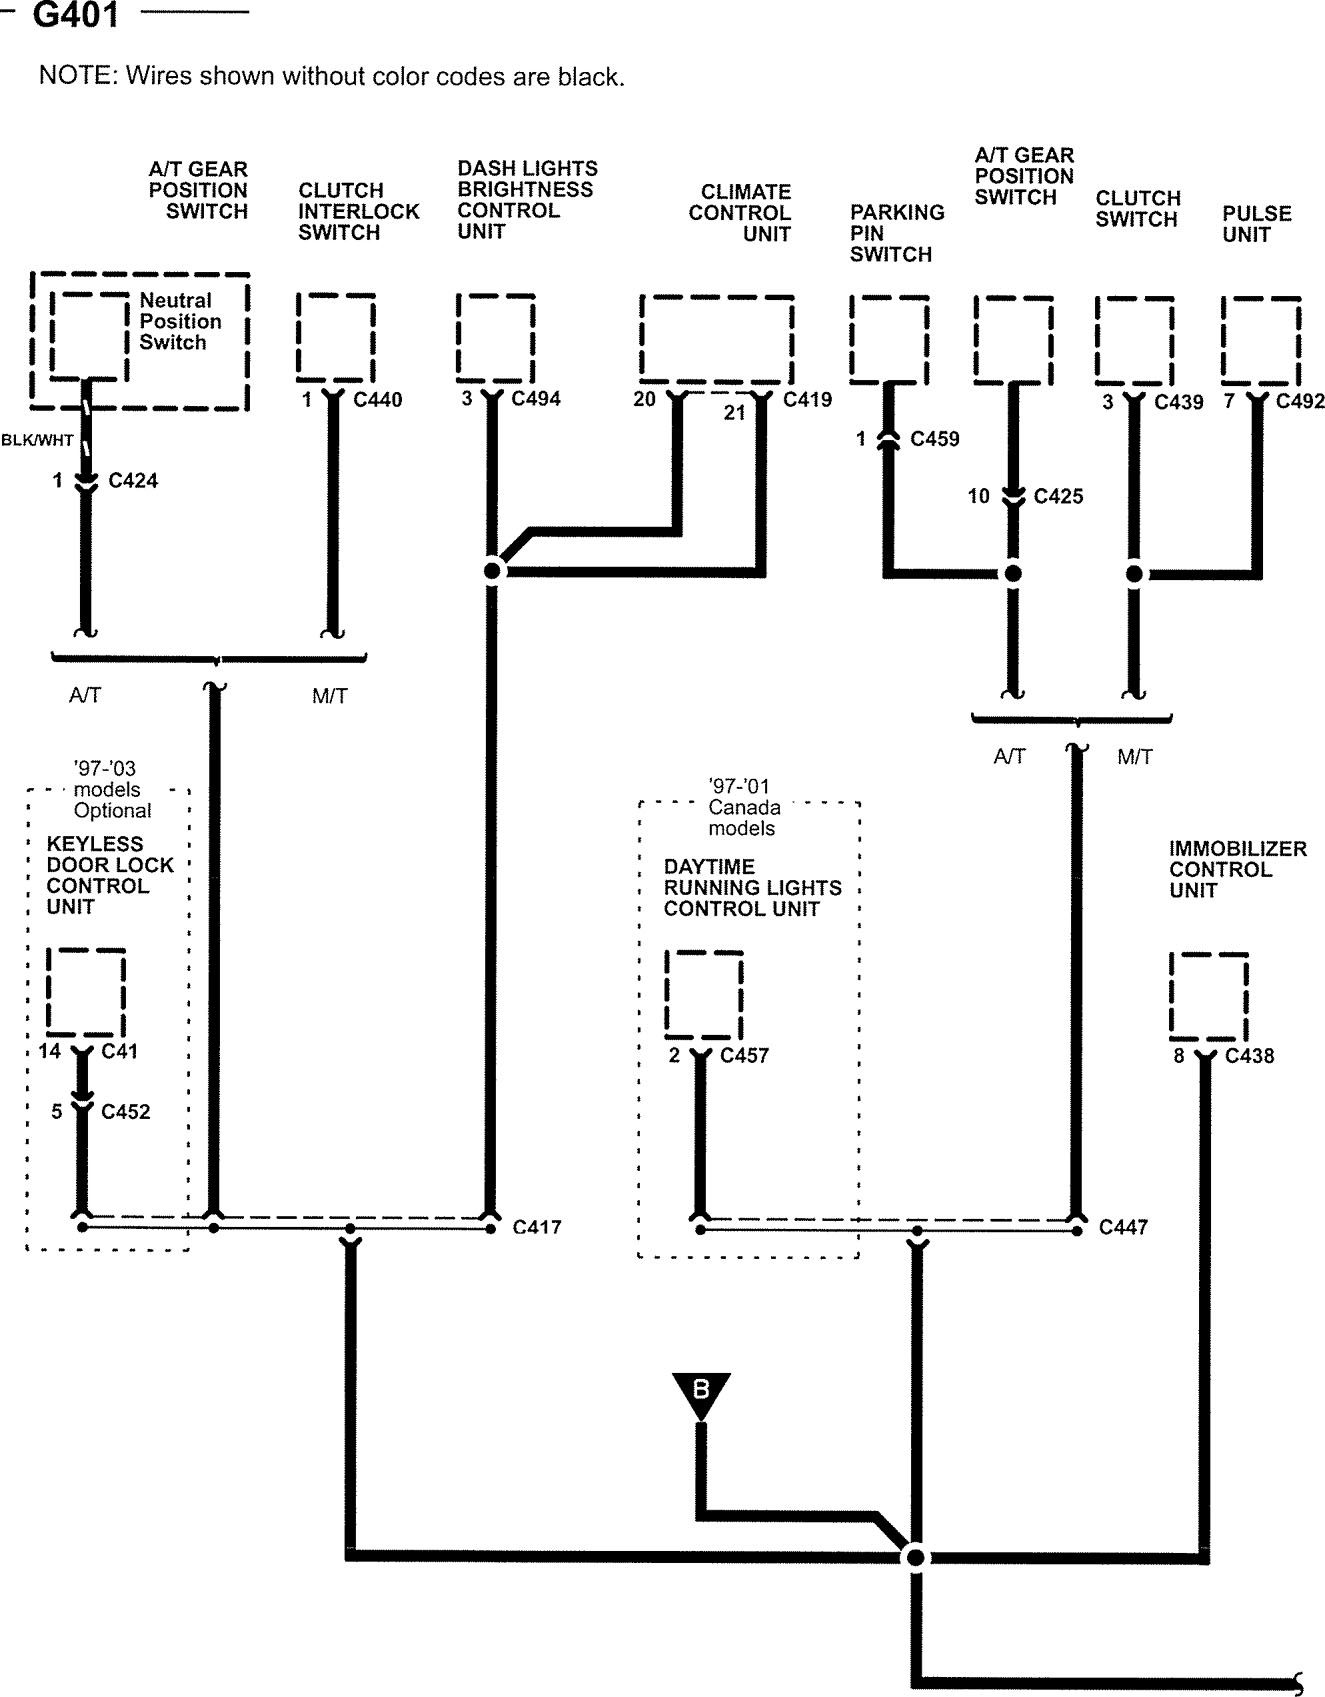 service manual  1993 acura nsx fuse box diagram pdf